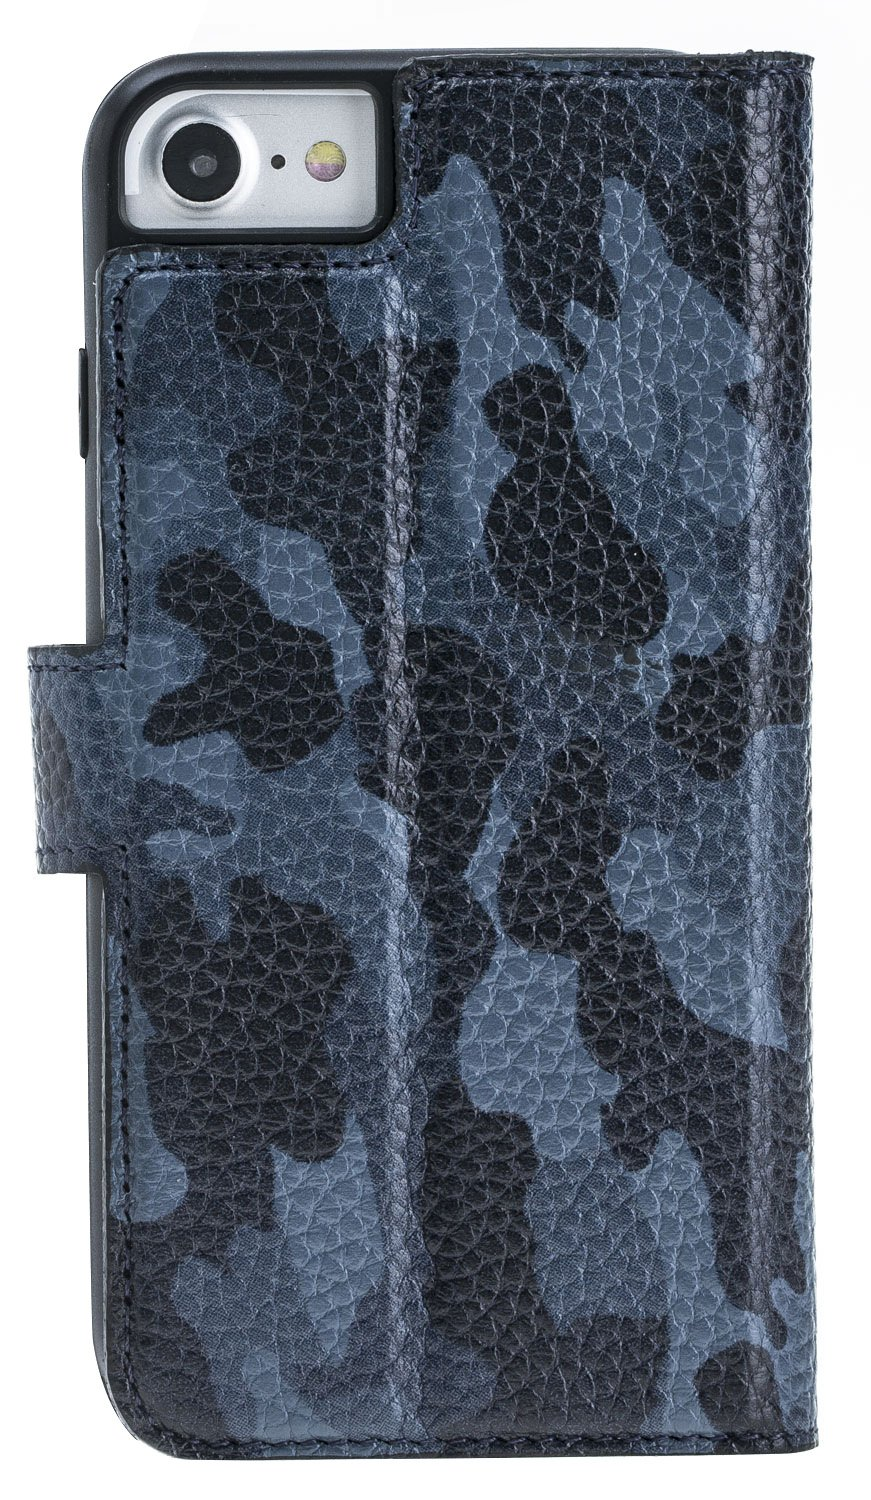 iphone 8 7 h lle abnehmbar 2in1 camouflage blau aus. Black Bedroom Furniture Sets. Home Design Ideas